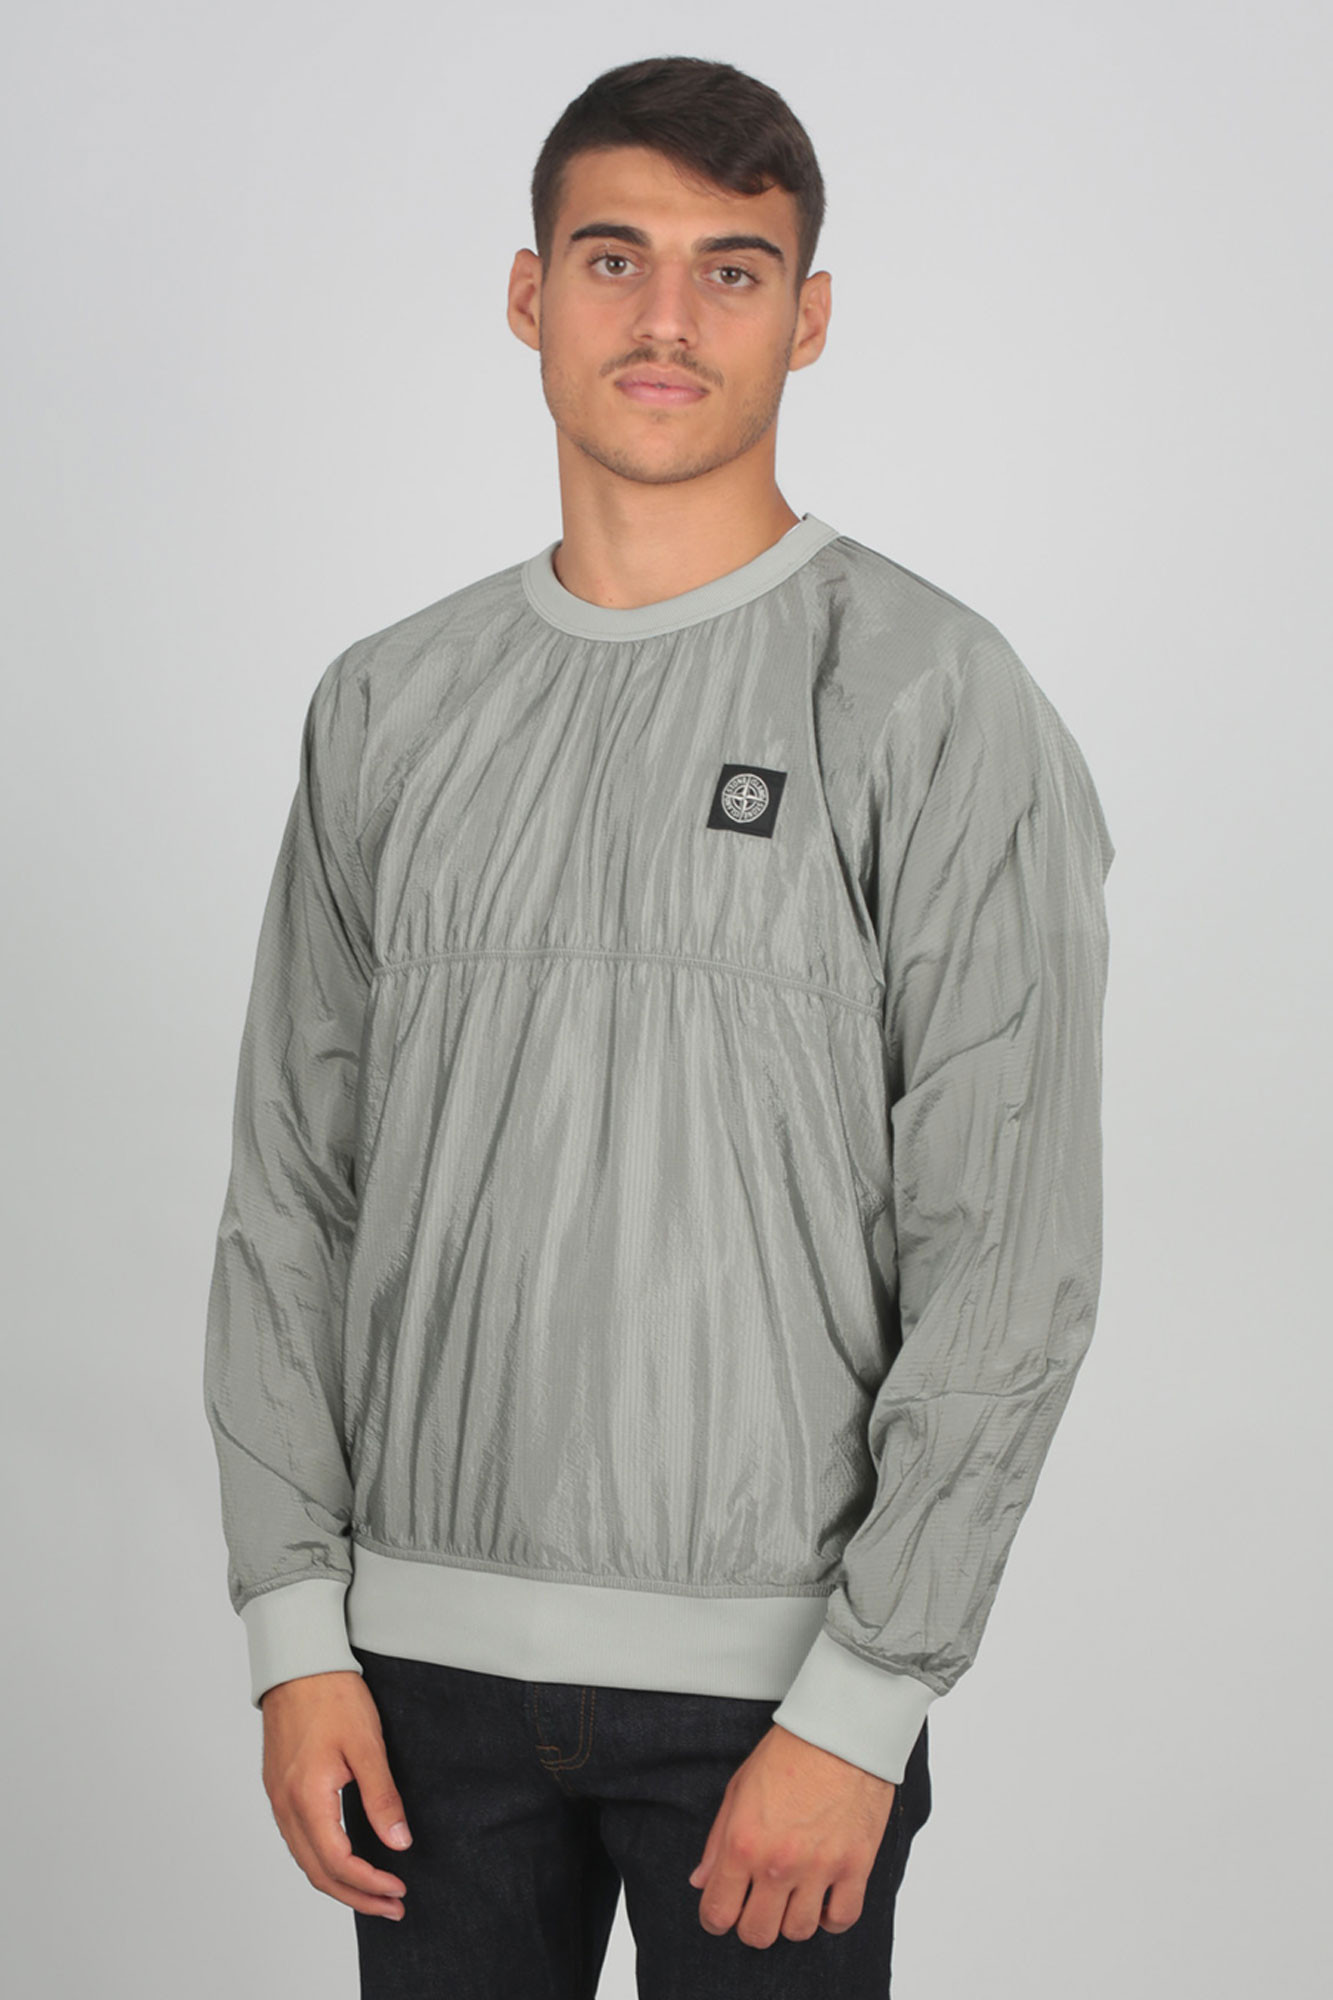 SWEAT-SHIRT STONE ISLAND GRIS 711563036-V0064